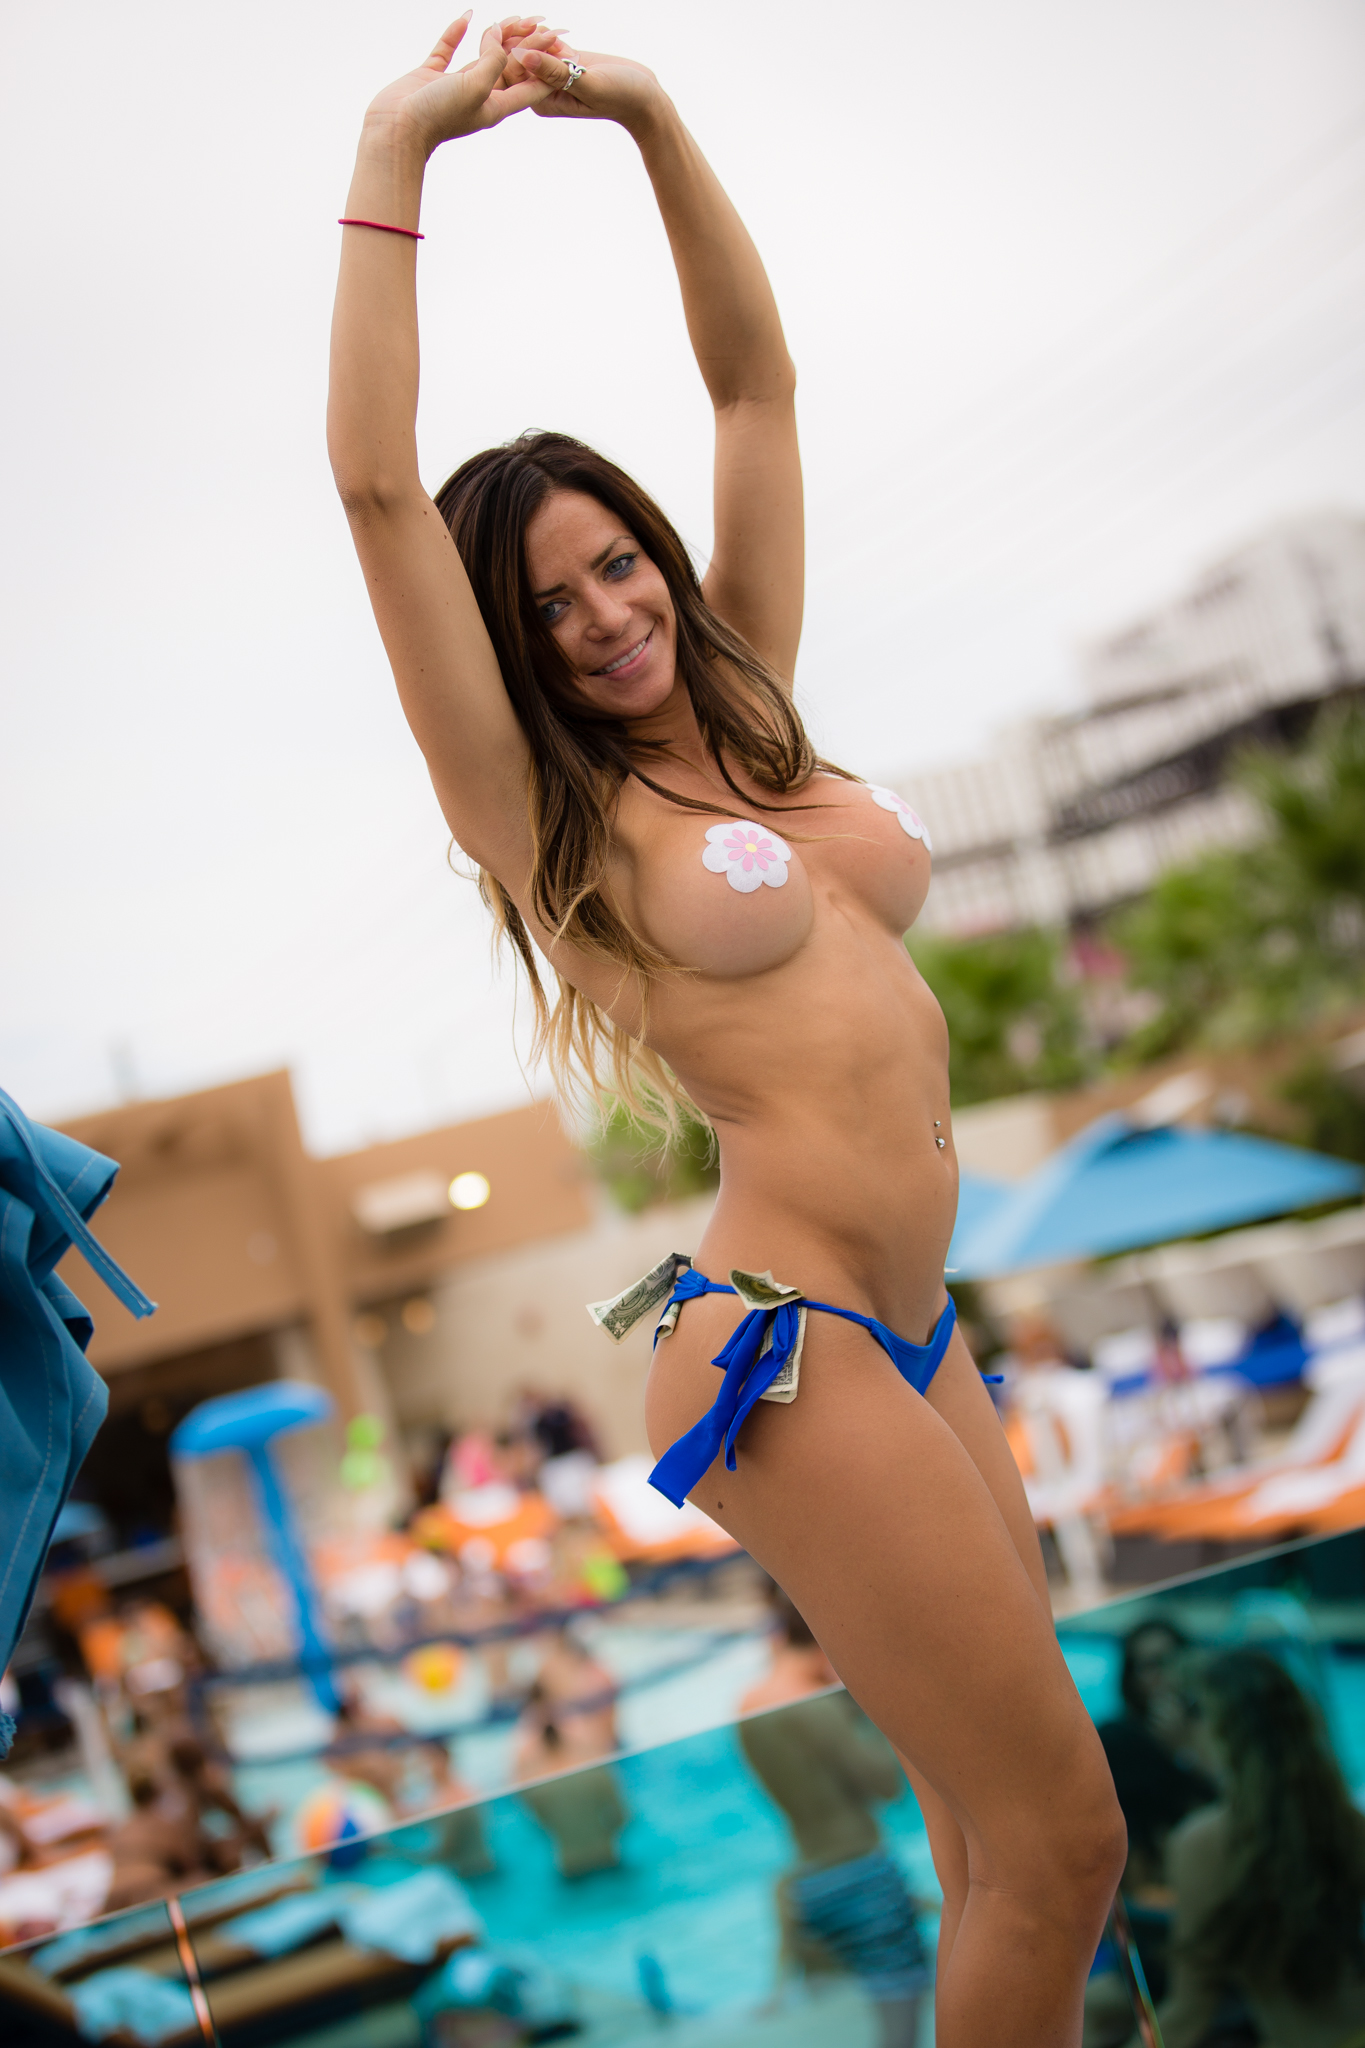 las-vegas-topless-pool-girl-pics-naked-primary-school-girls-pictuers